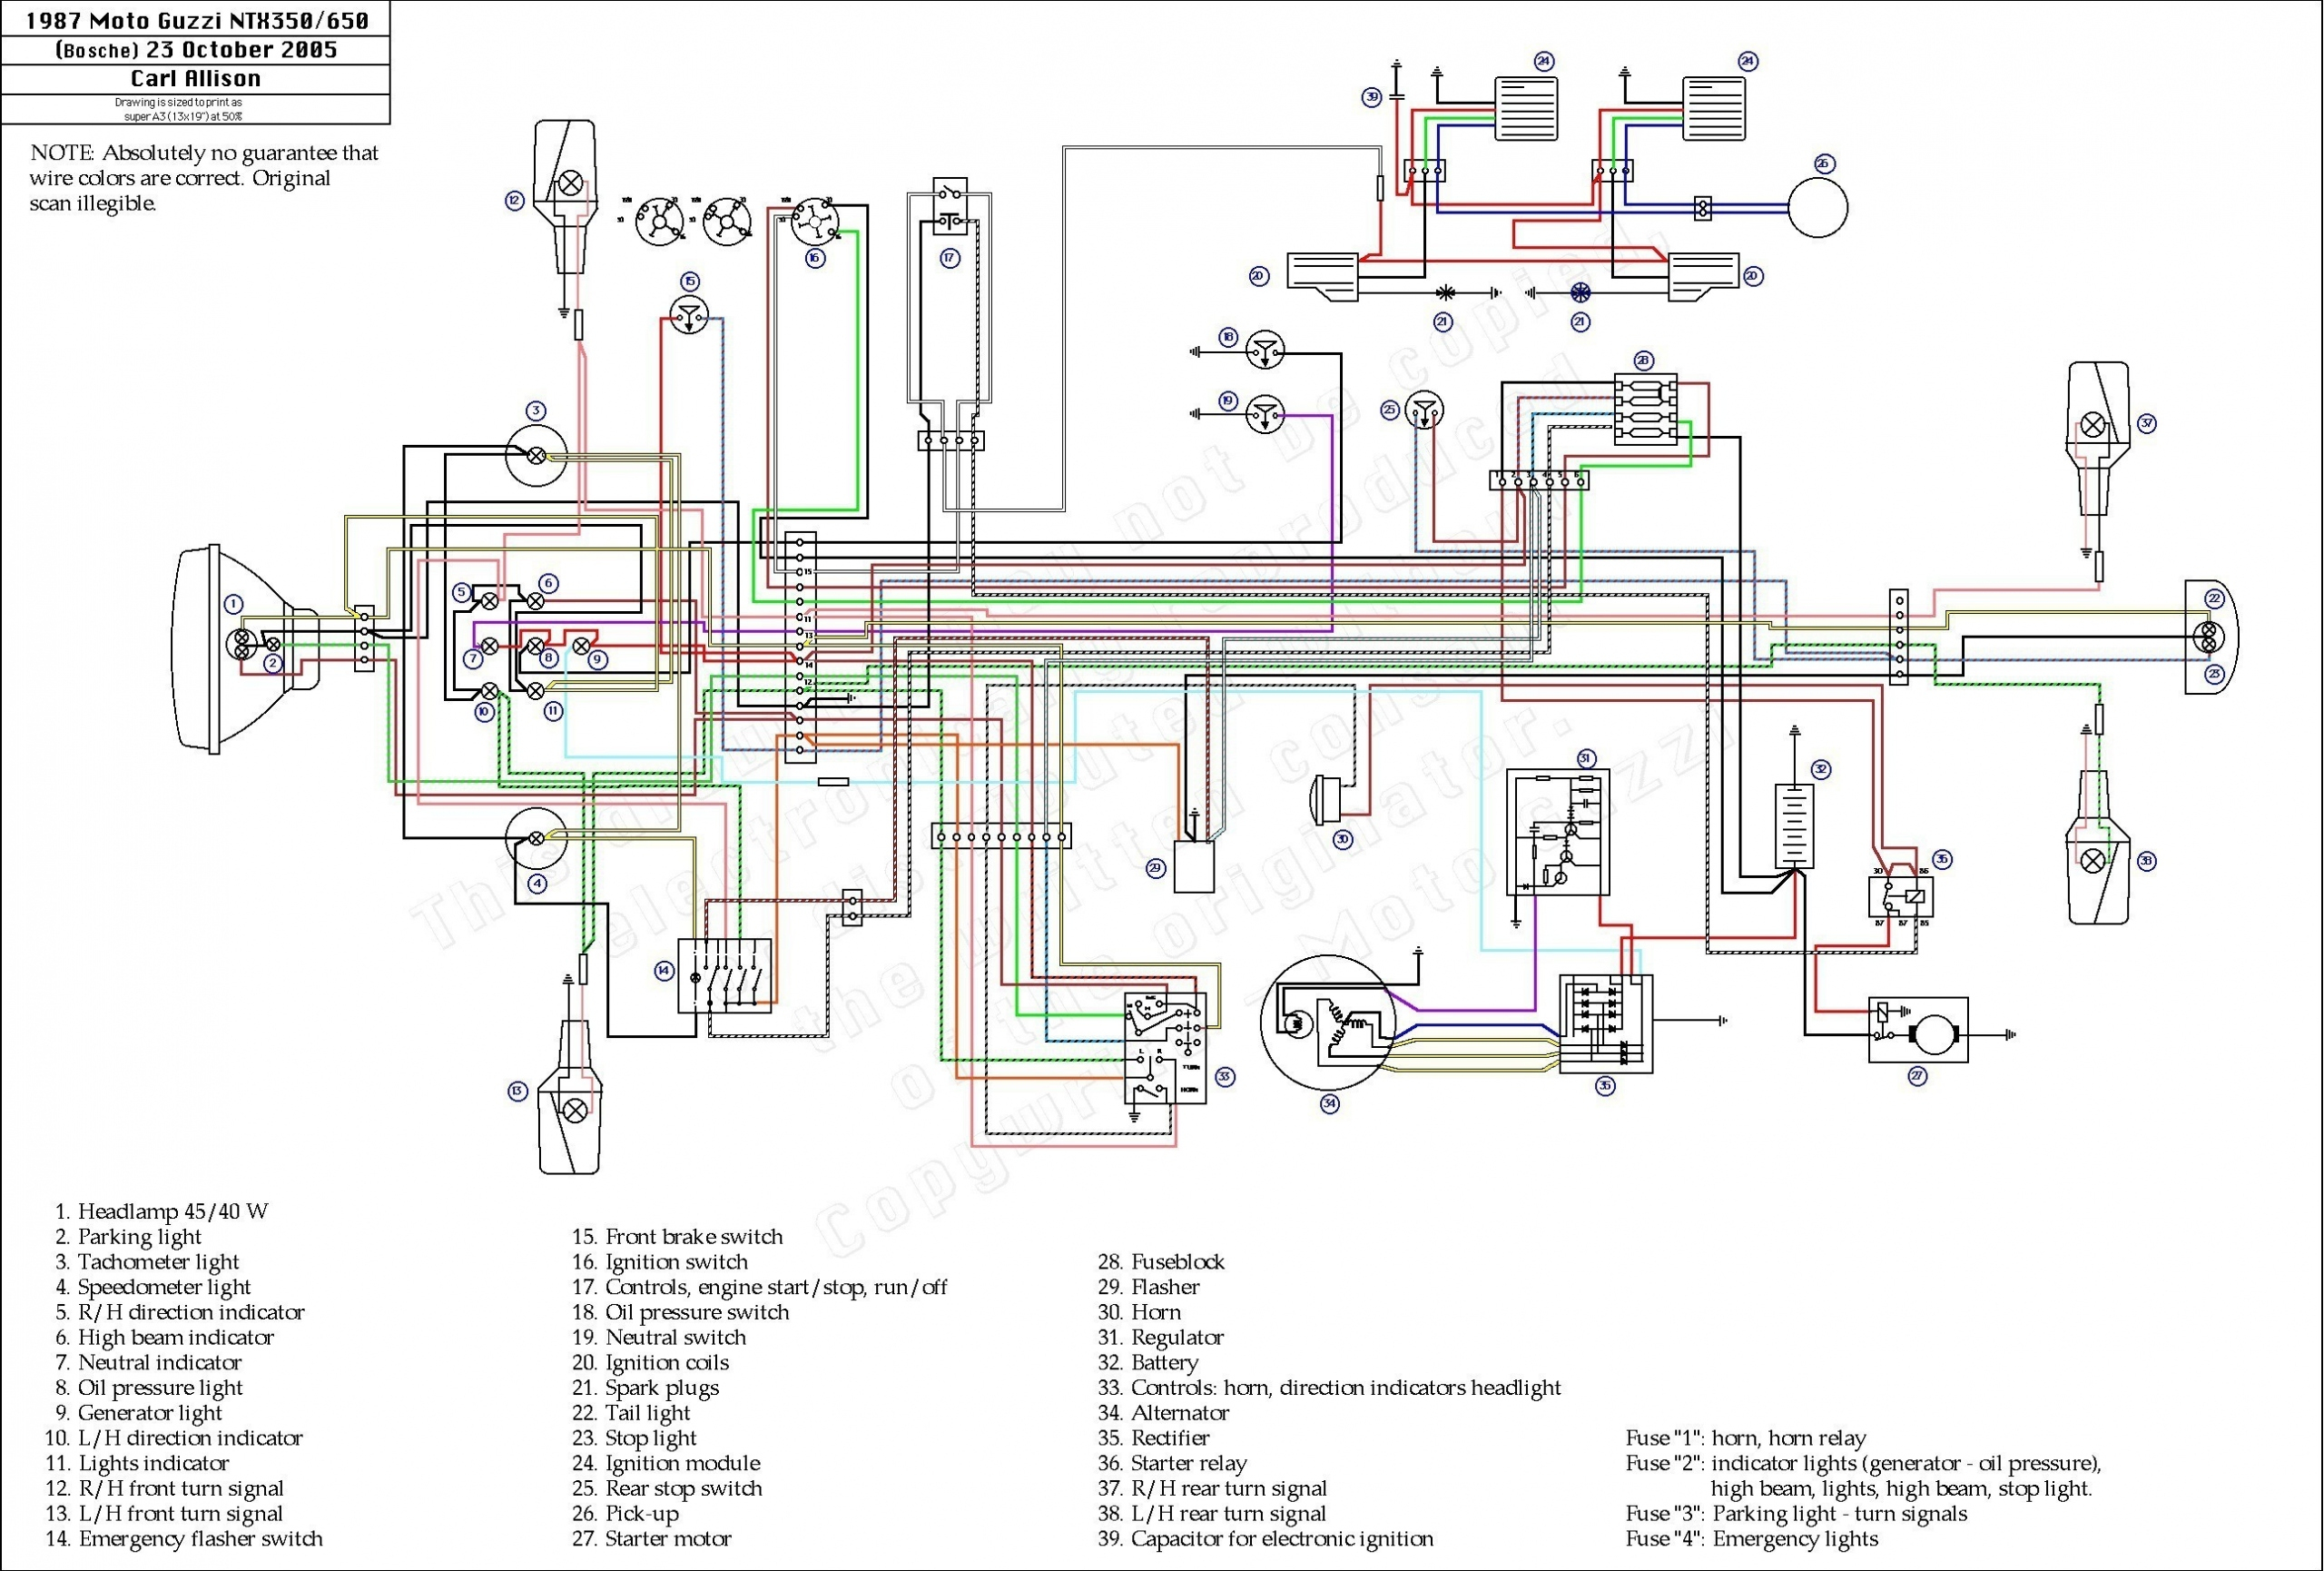 Taotao 110Cc Wiring Harness Diagram - Wiring Diagram Detailed - Chinese 125Cc Atv Wiring Diagram